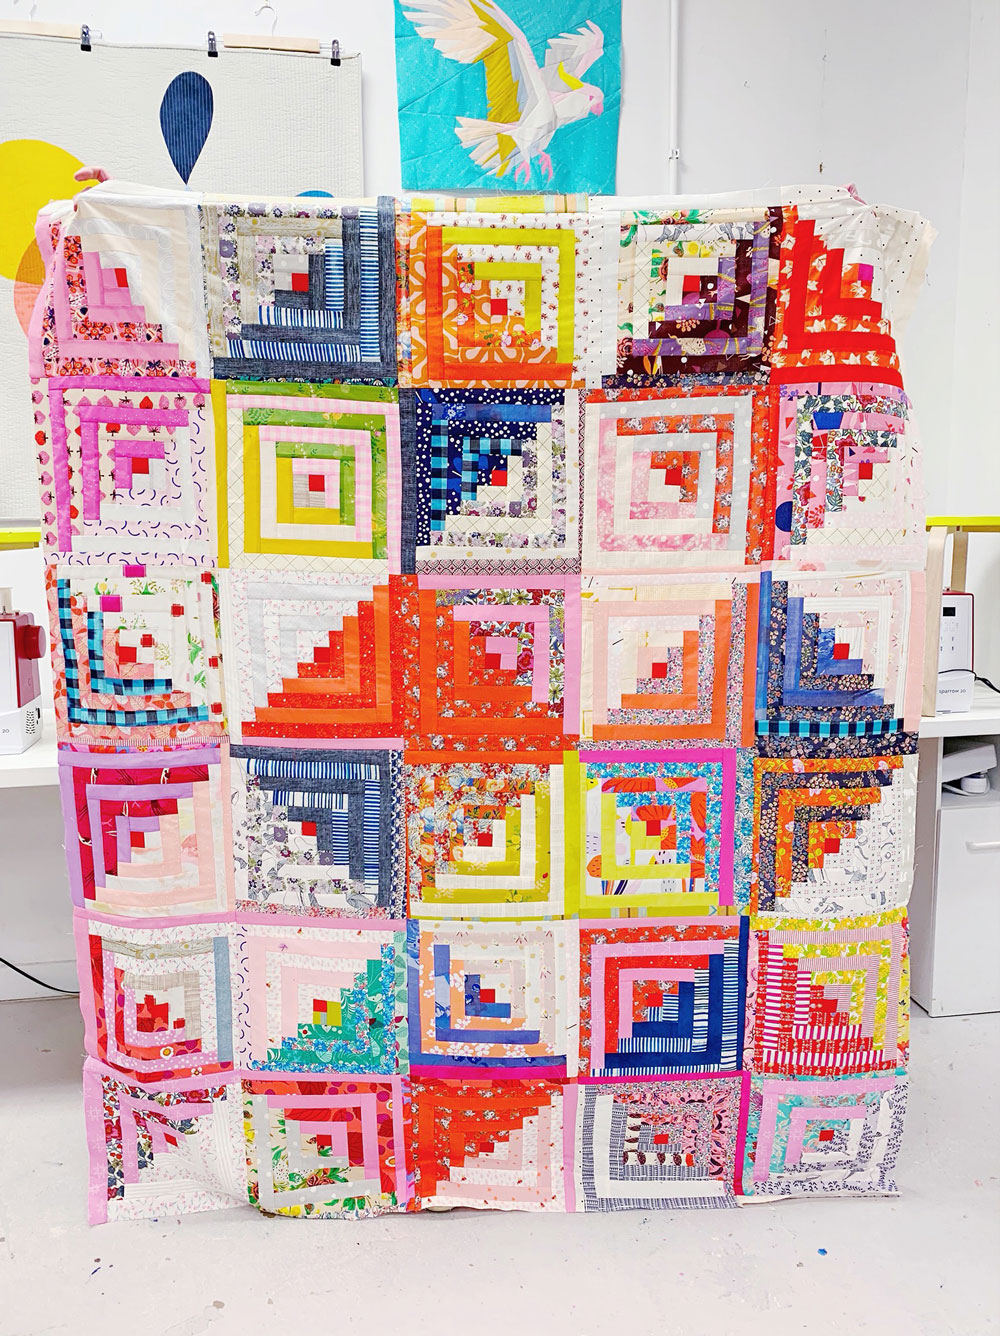 Annabel Wrigley is the founder of Little Pincushion Studio – a creative place that teaches sewing workshops to children as well as adults! Annabel is known for her colorful doodle quilts and bright fabric designs. suzyquilts.com #logcabinquilt #rainbowquilt